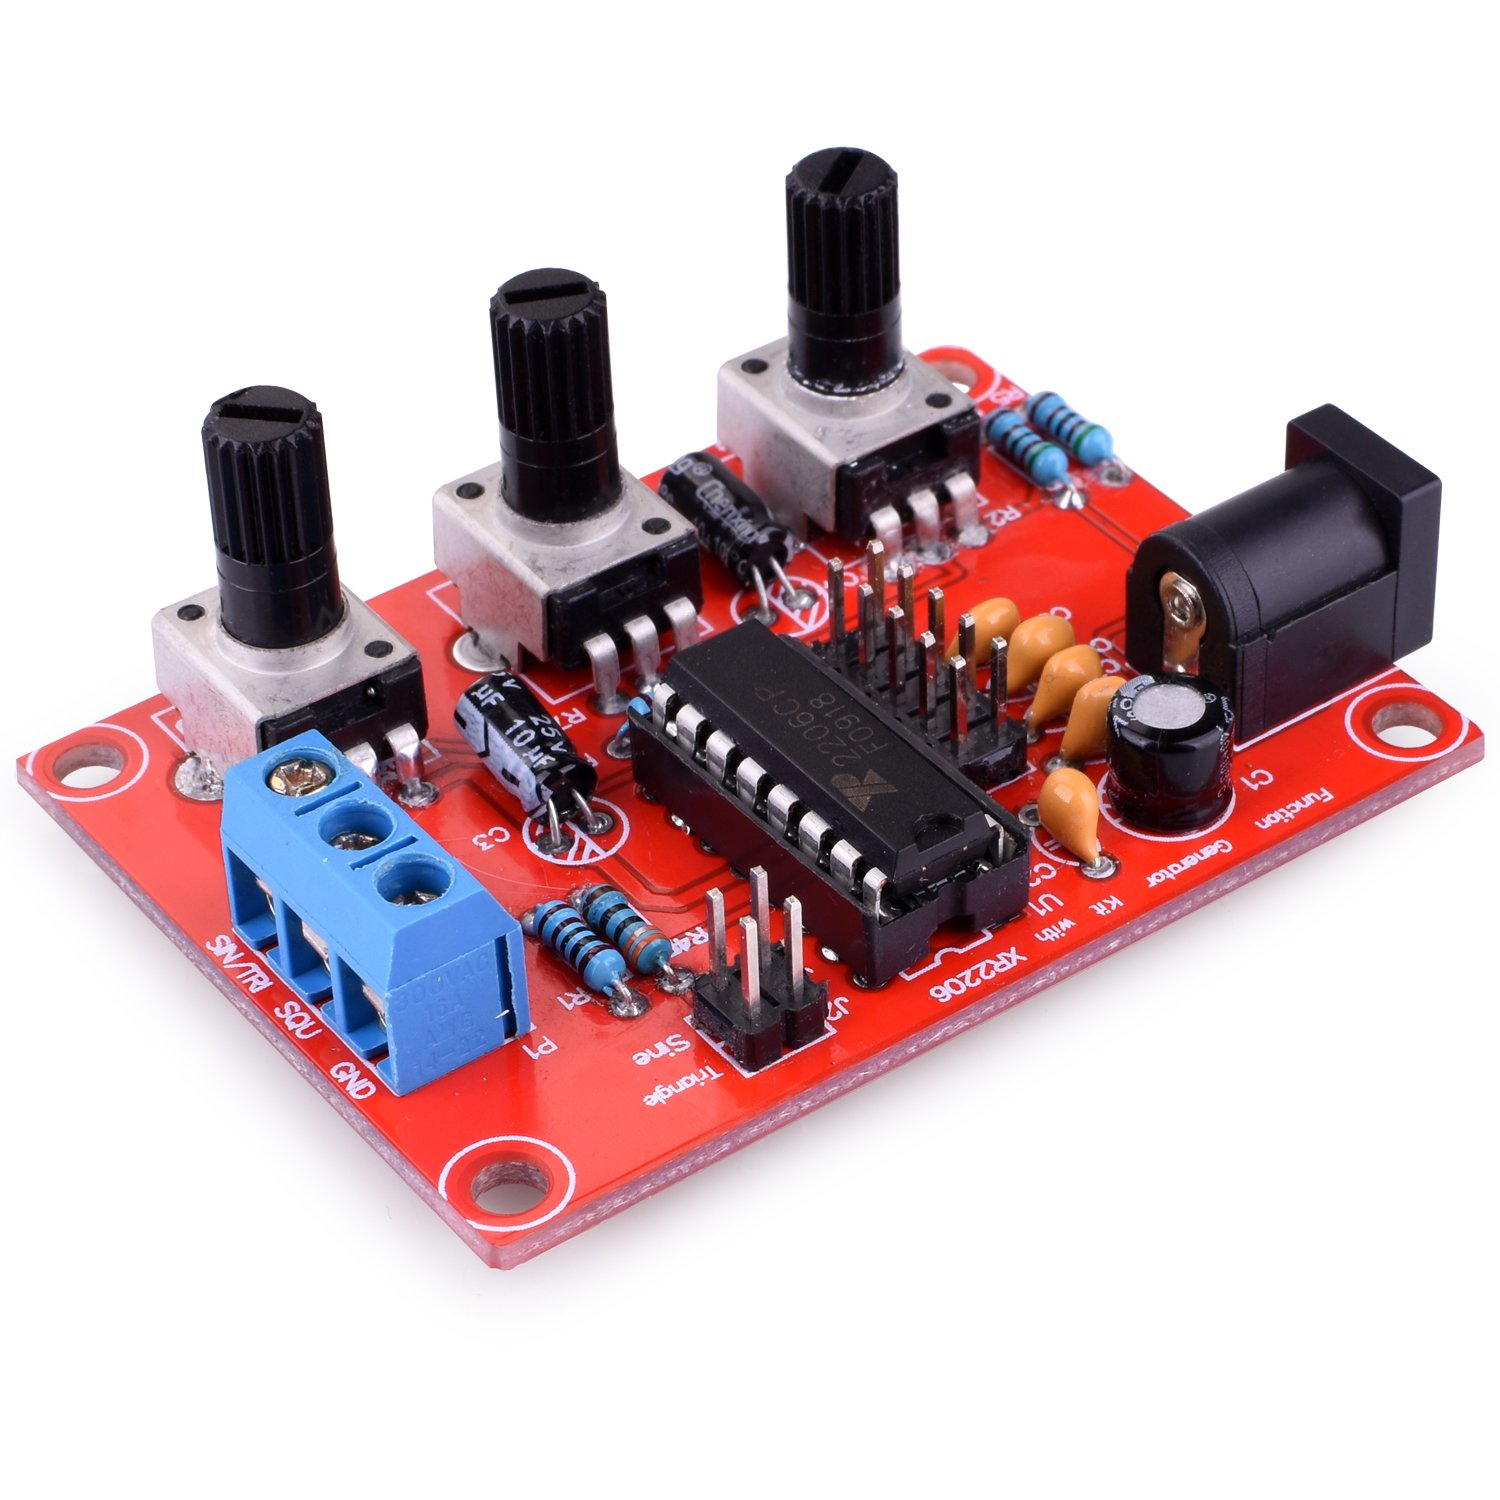 Function Generator Kuman Updated Xr2206 Diy Kit Signal Tri Waveform With Screwdriver And Jumper Wires Cable Sine Triangle Square Output 1hz 1mhz Adjustable